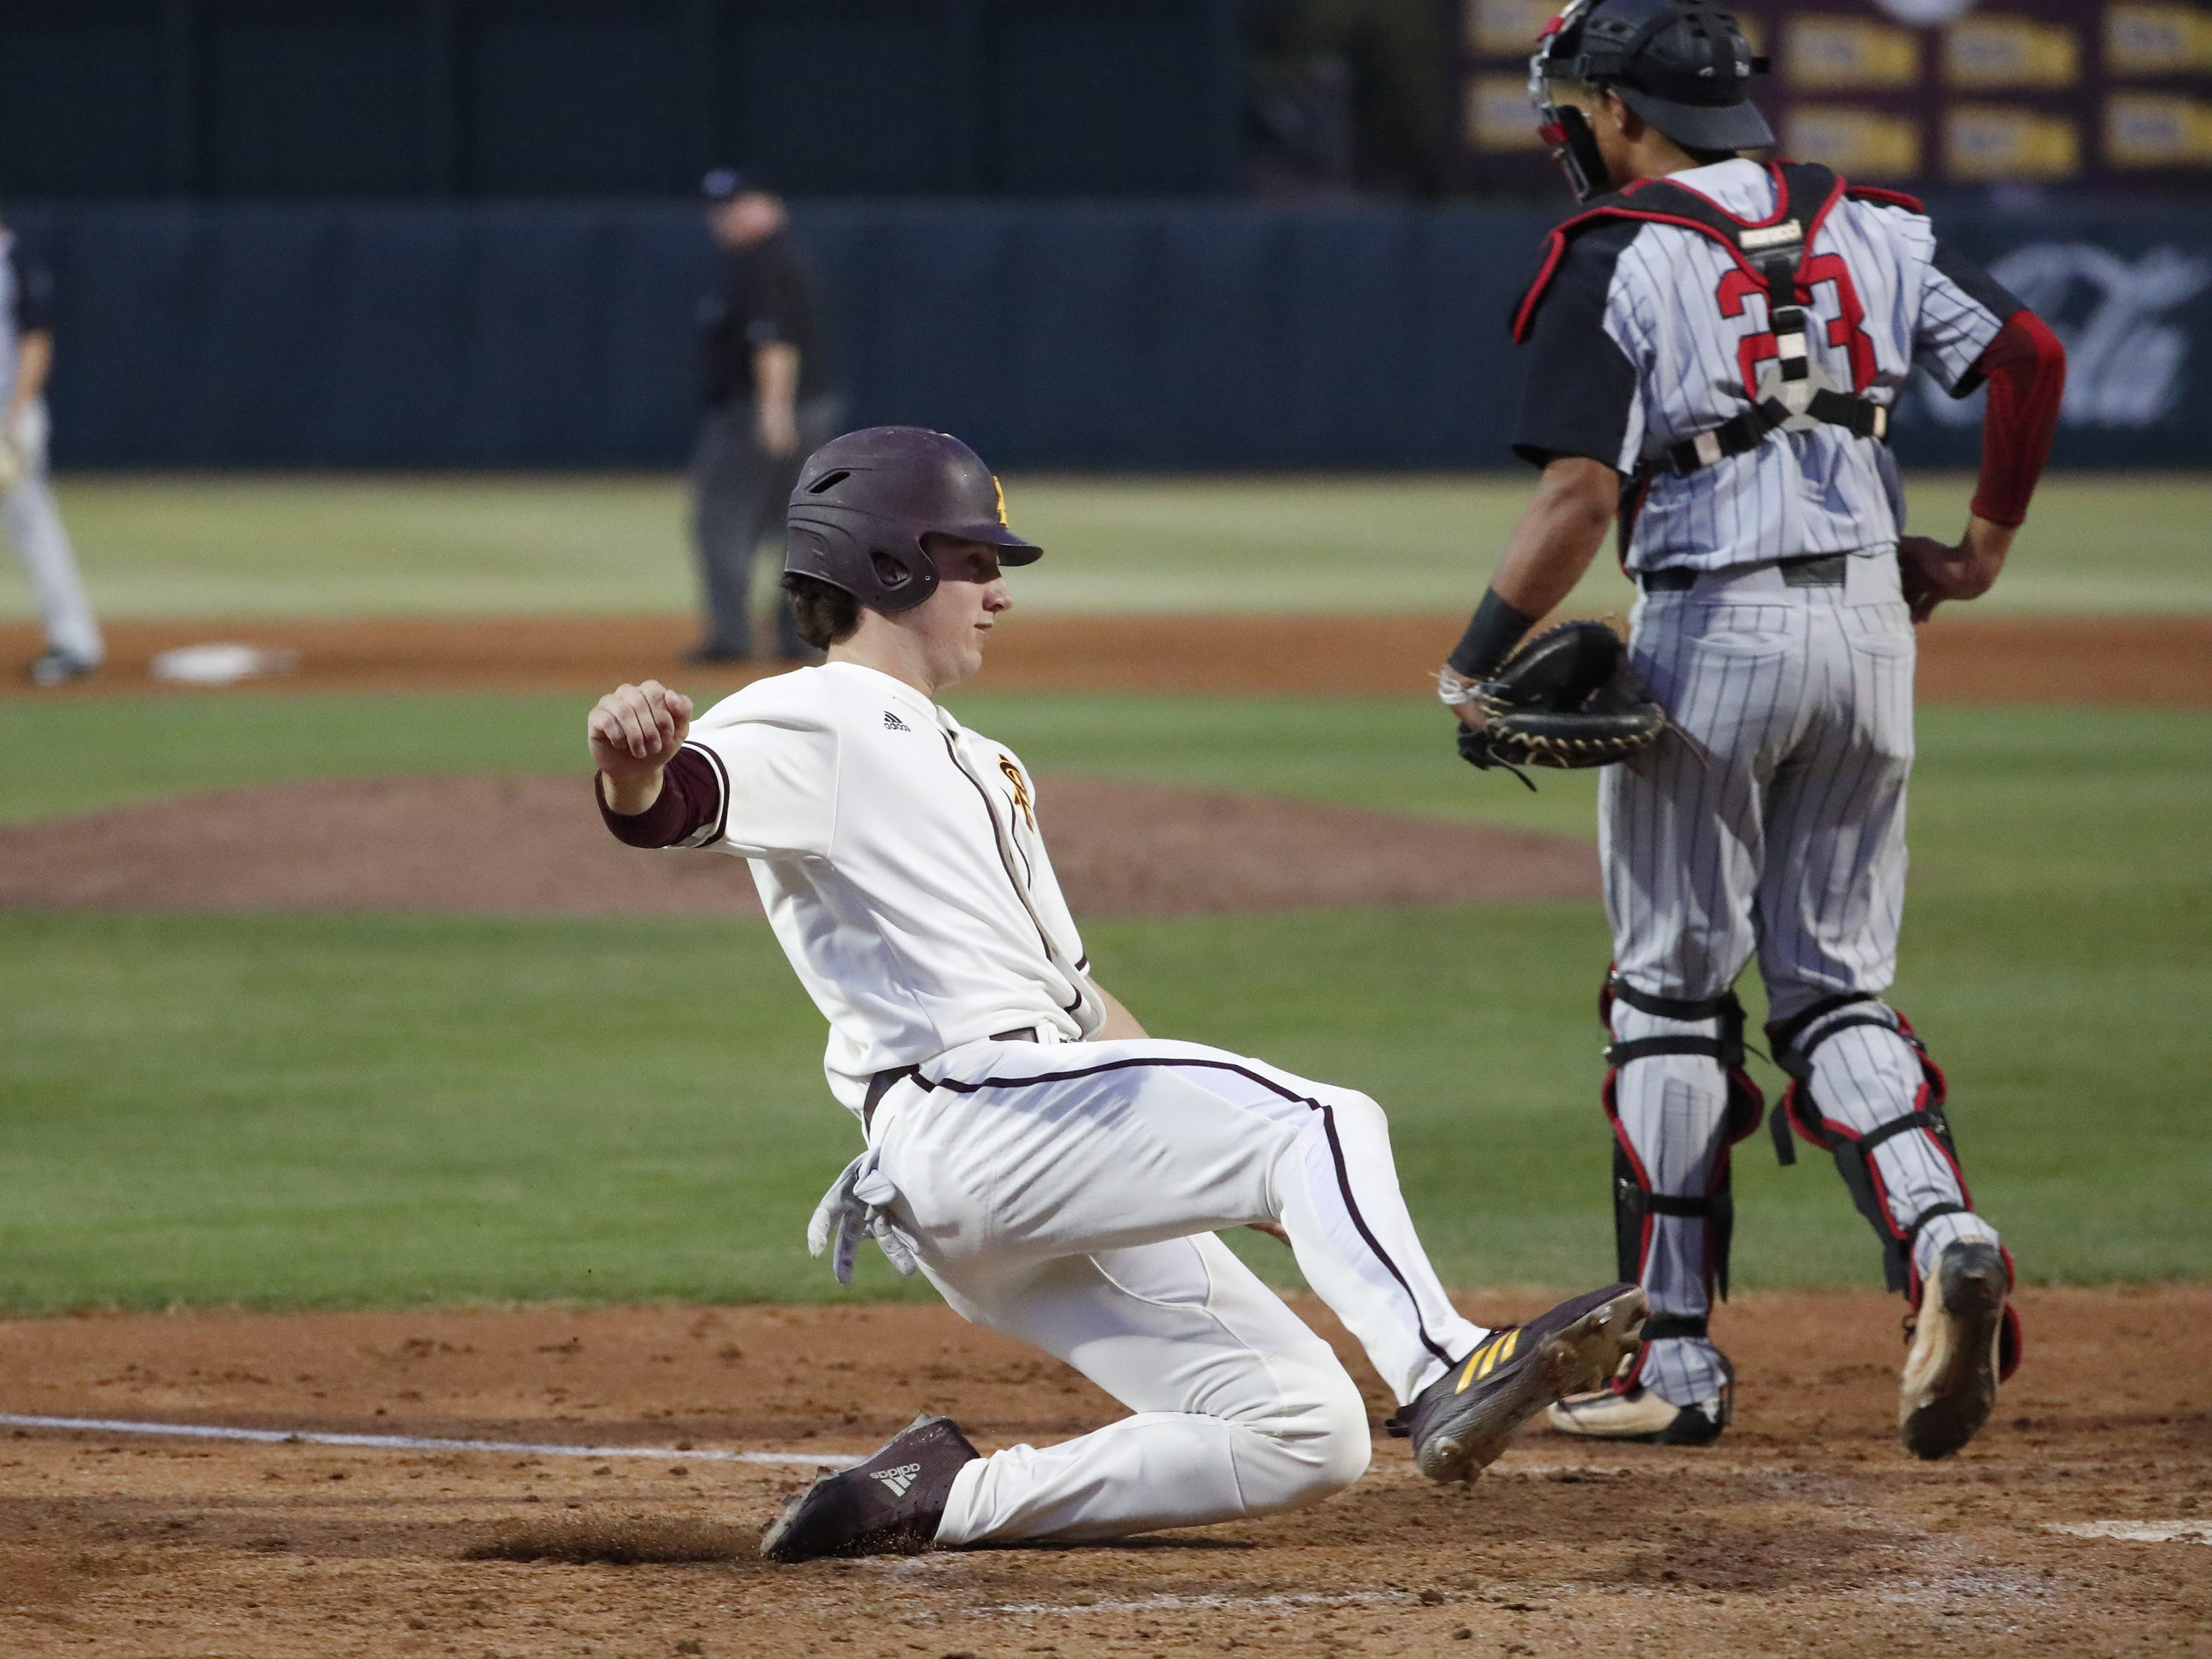 ASU's Trevor Hauver scores behind UNLV catcher Jacob Godman during the second inning in Phoenix April 23, 2019.